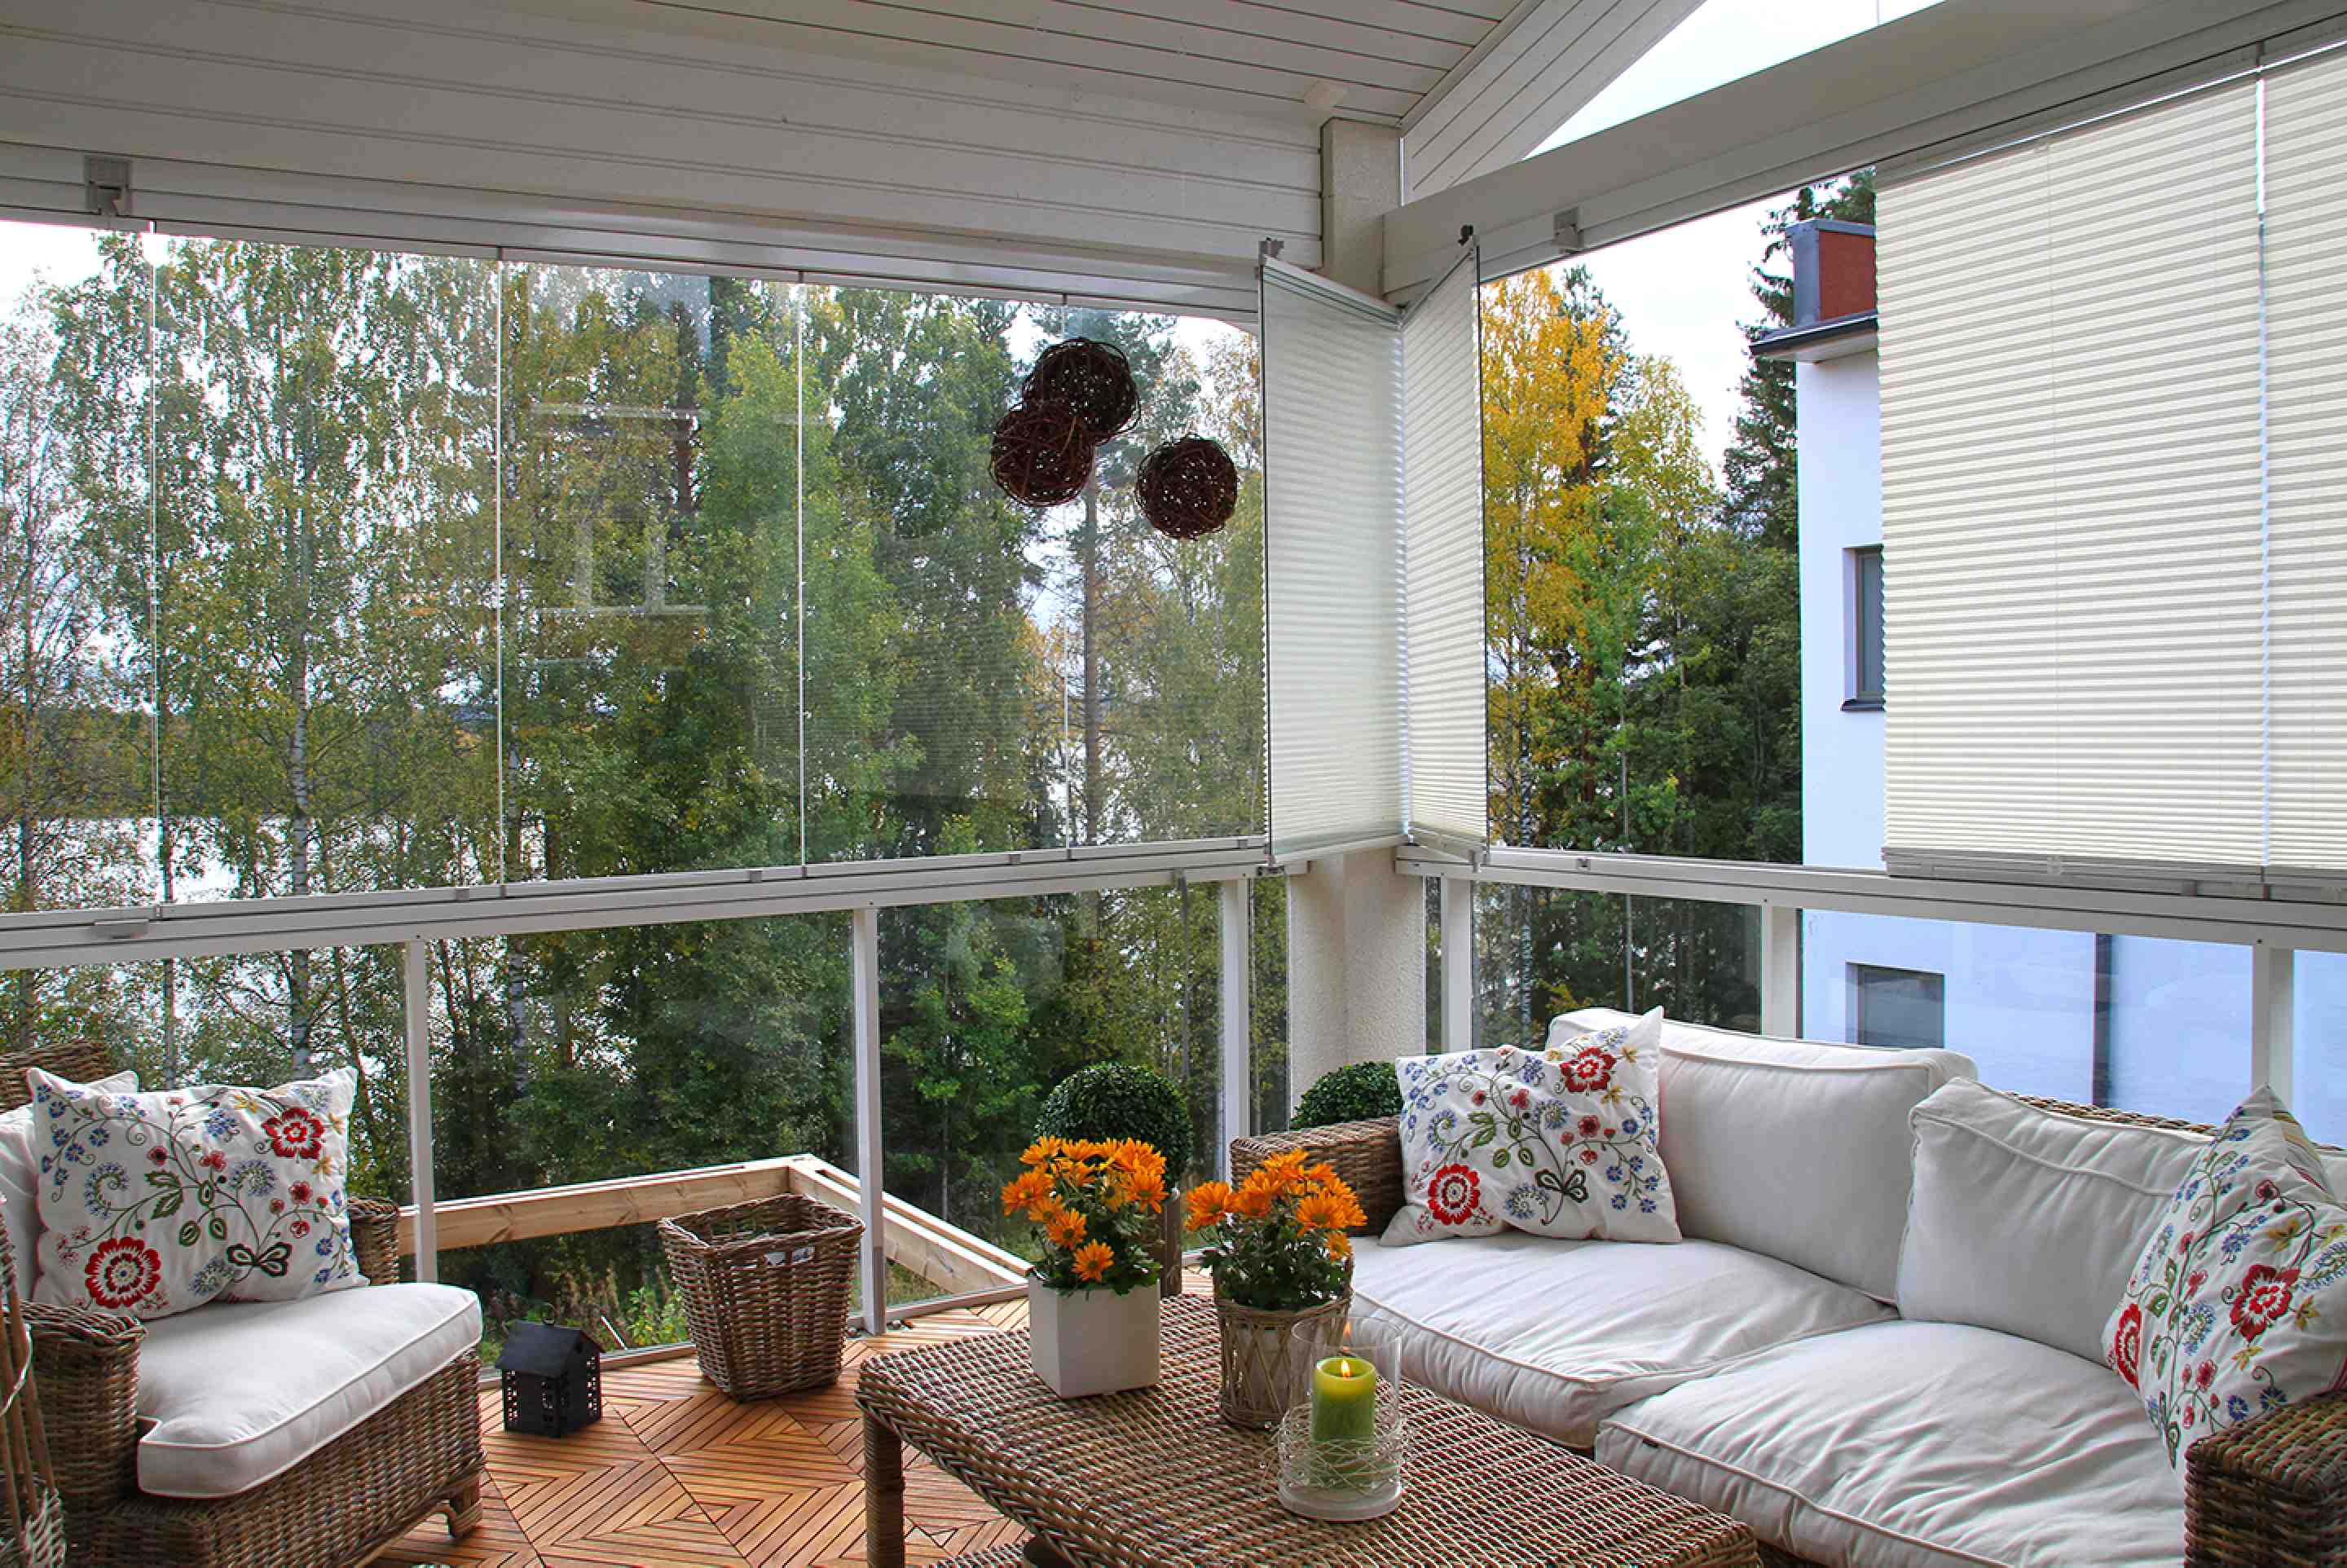 balcony glass, balcony glass in toronto, balcony glass in vancouver, balcony glass in burnaby, balcony glass in burlington, retractable balcony glass, frameless retractable glass, lumon, lumon balcony glass, balcony glass canada, balcony glass in mississauga